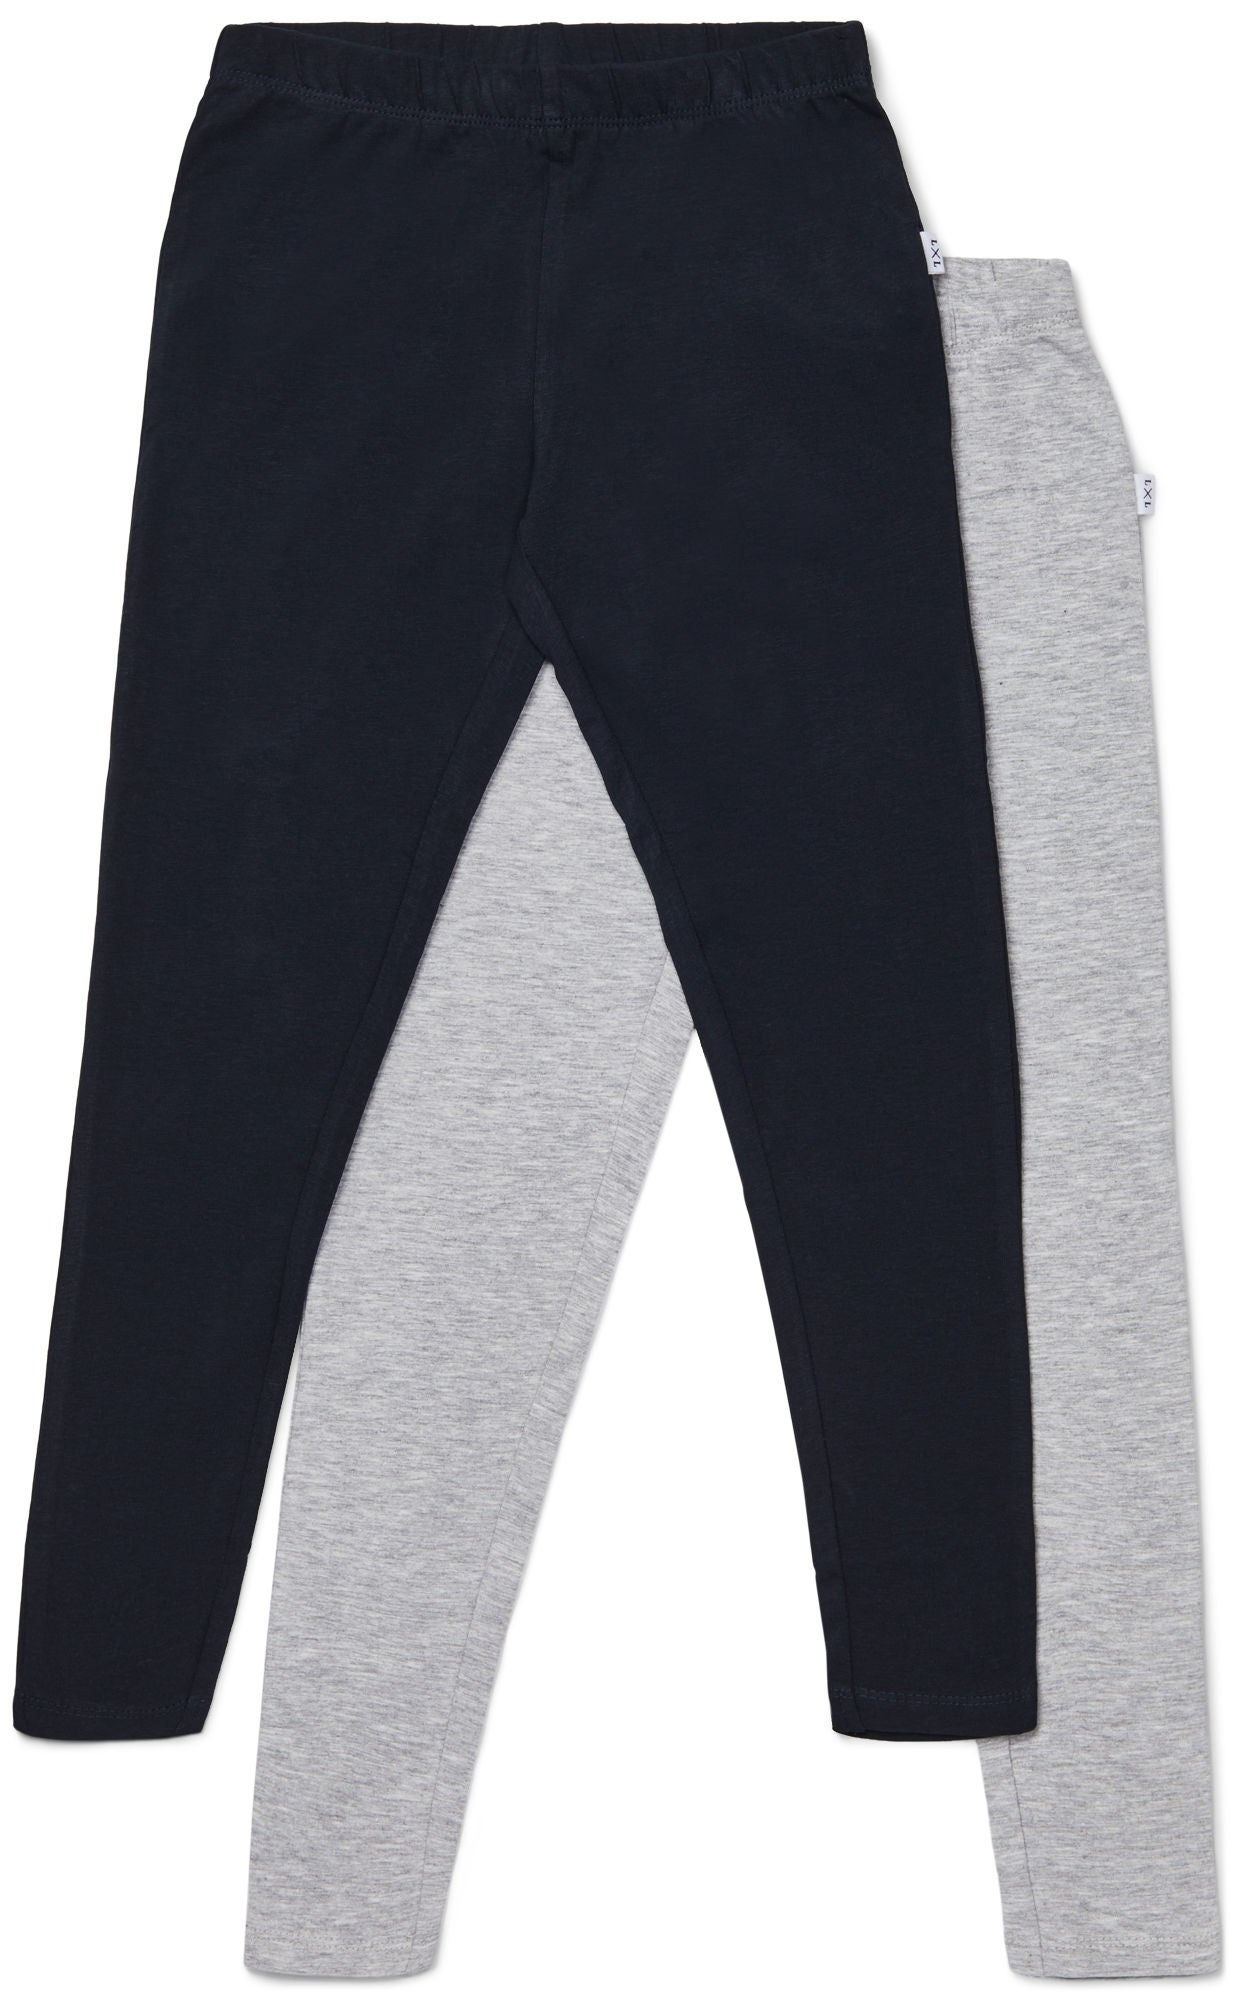 Luca & Lola Linda Leggings 2-pak, Grey Melange/Phantom